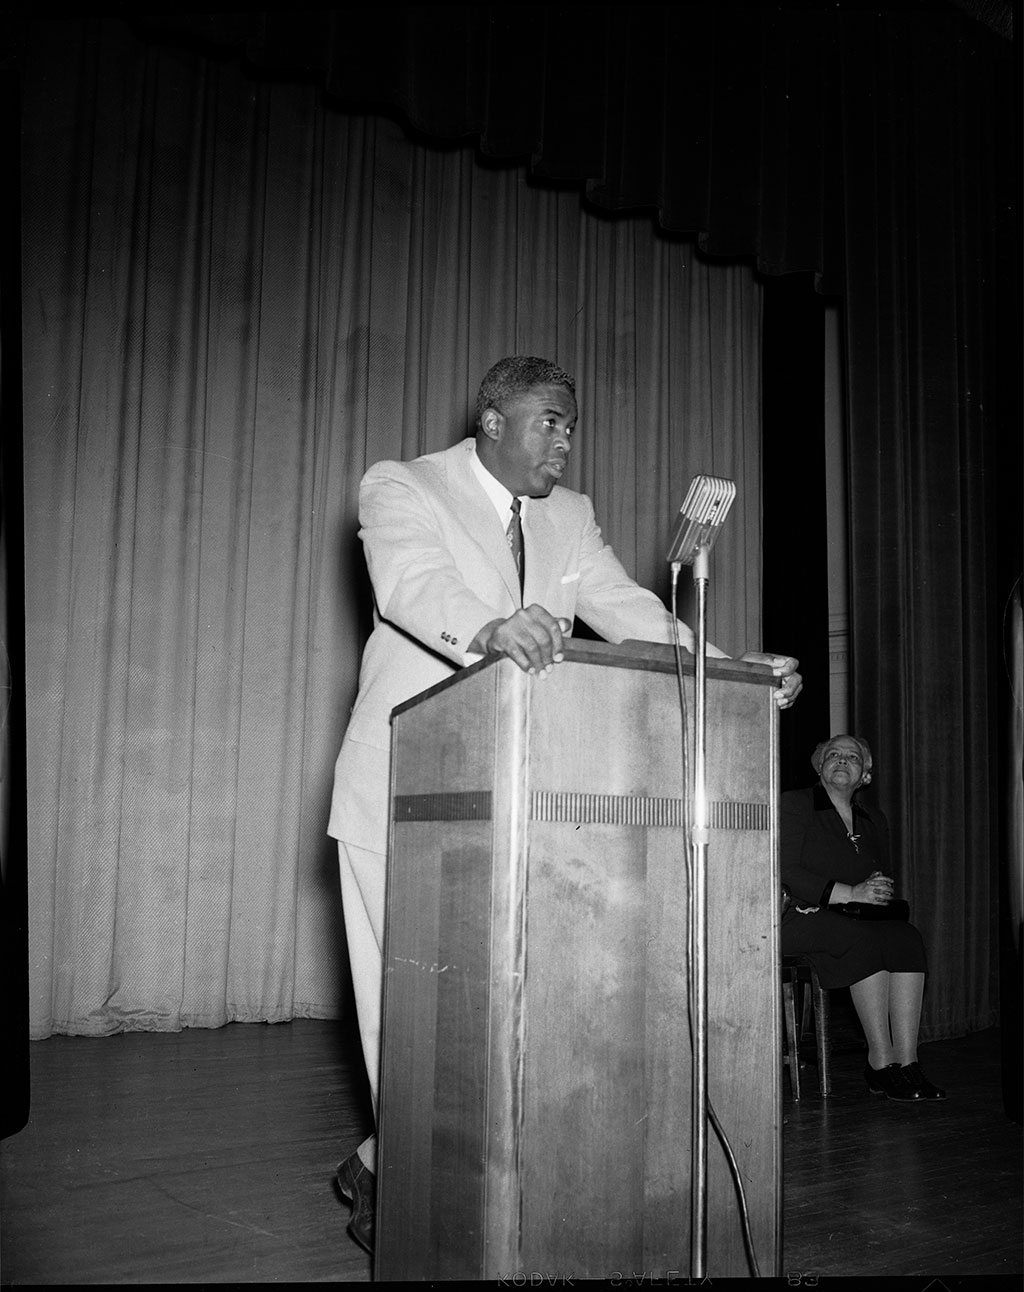 Jackie Robinson speaks at podium at the NAACP 50th anniversary event, 1959<br/>Jackie Robinson Museum Collection